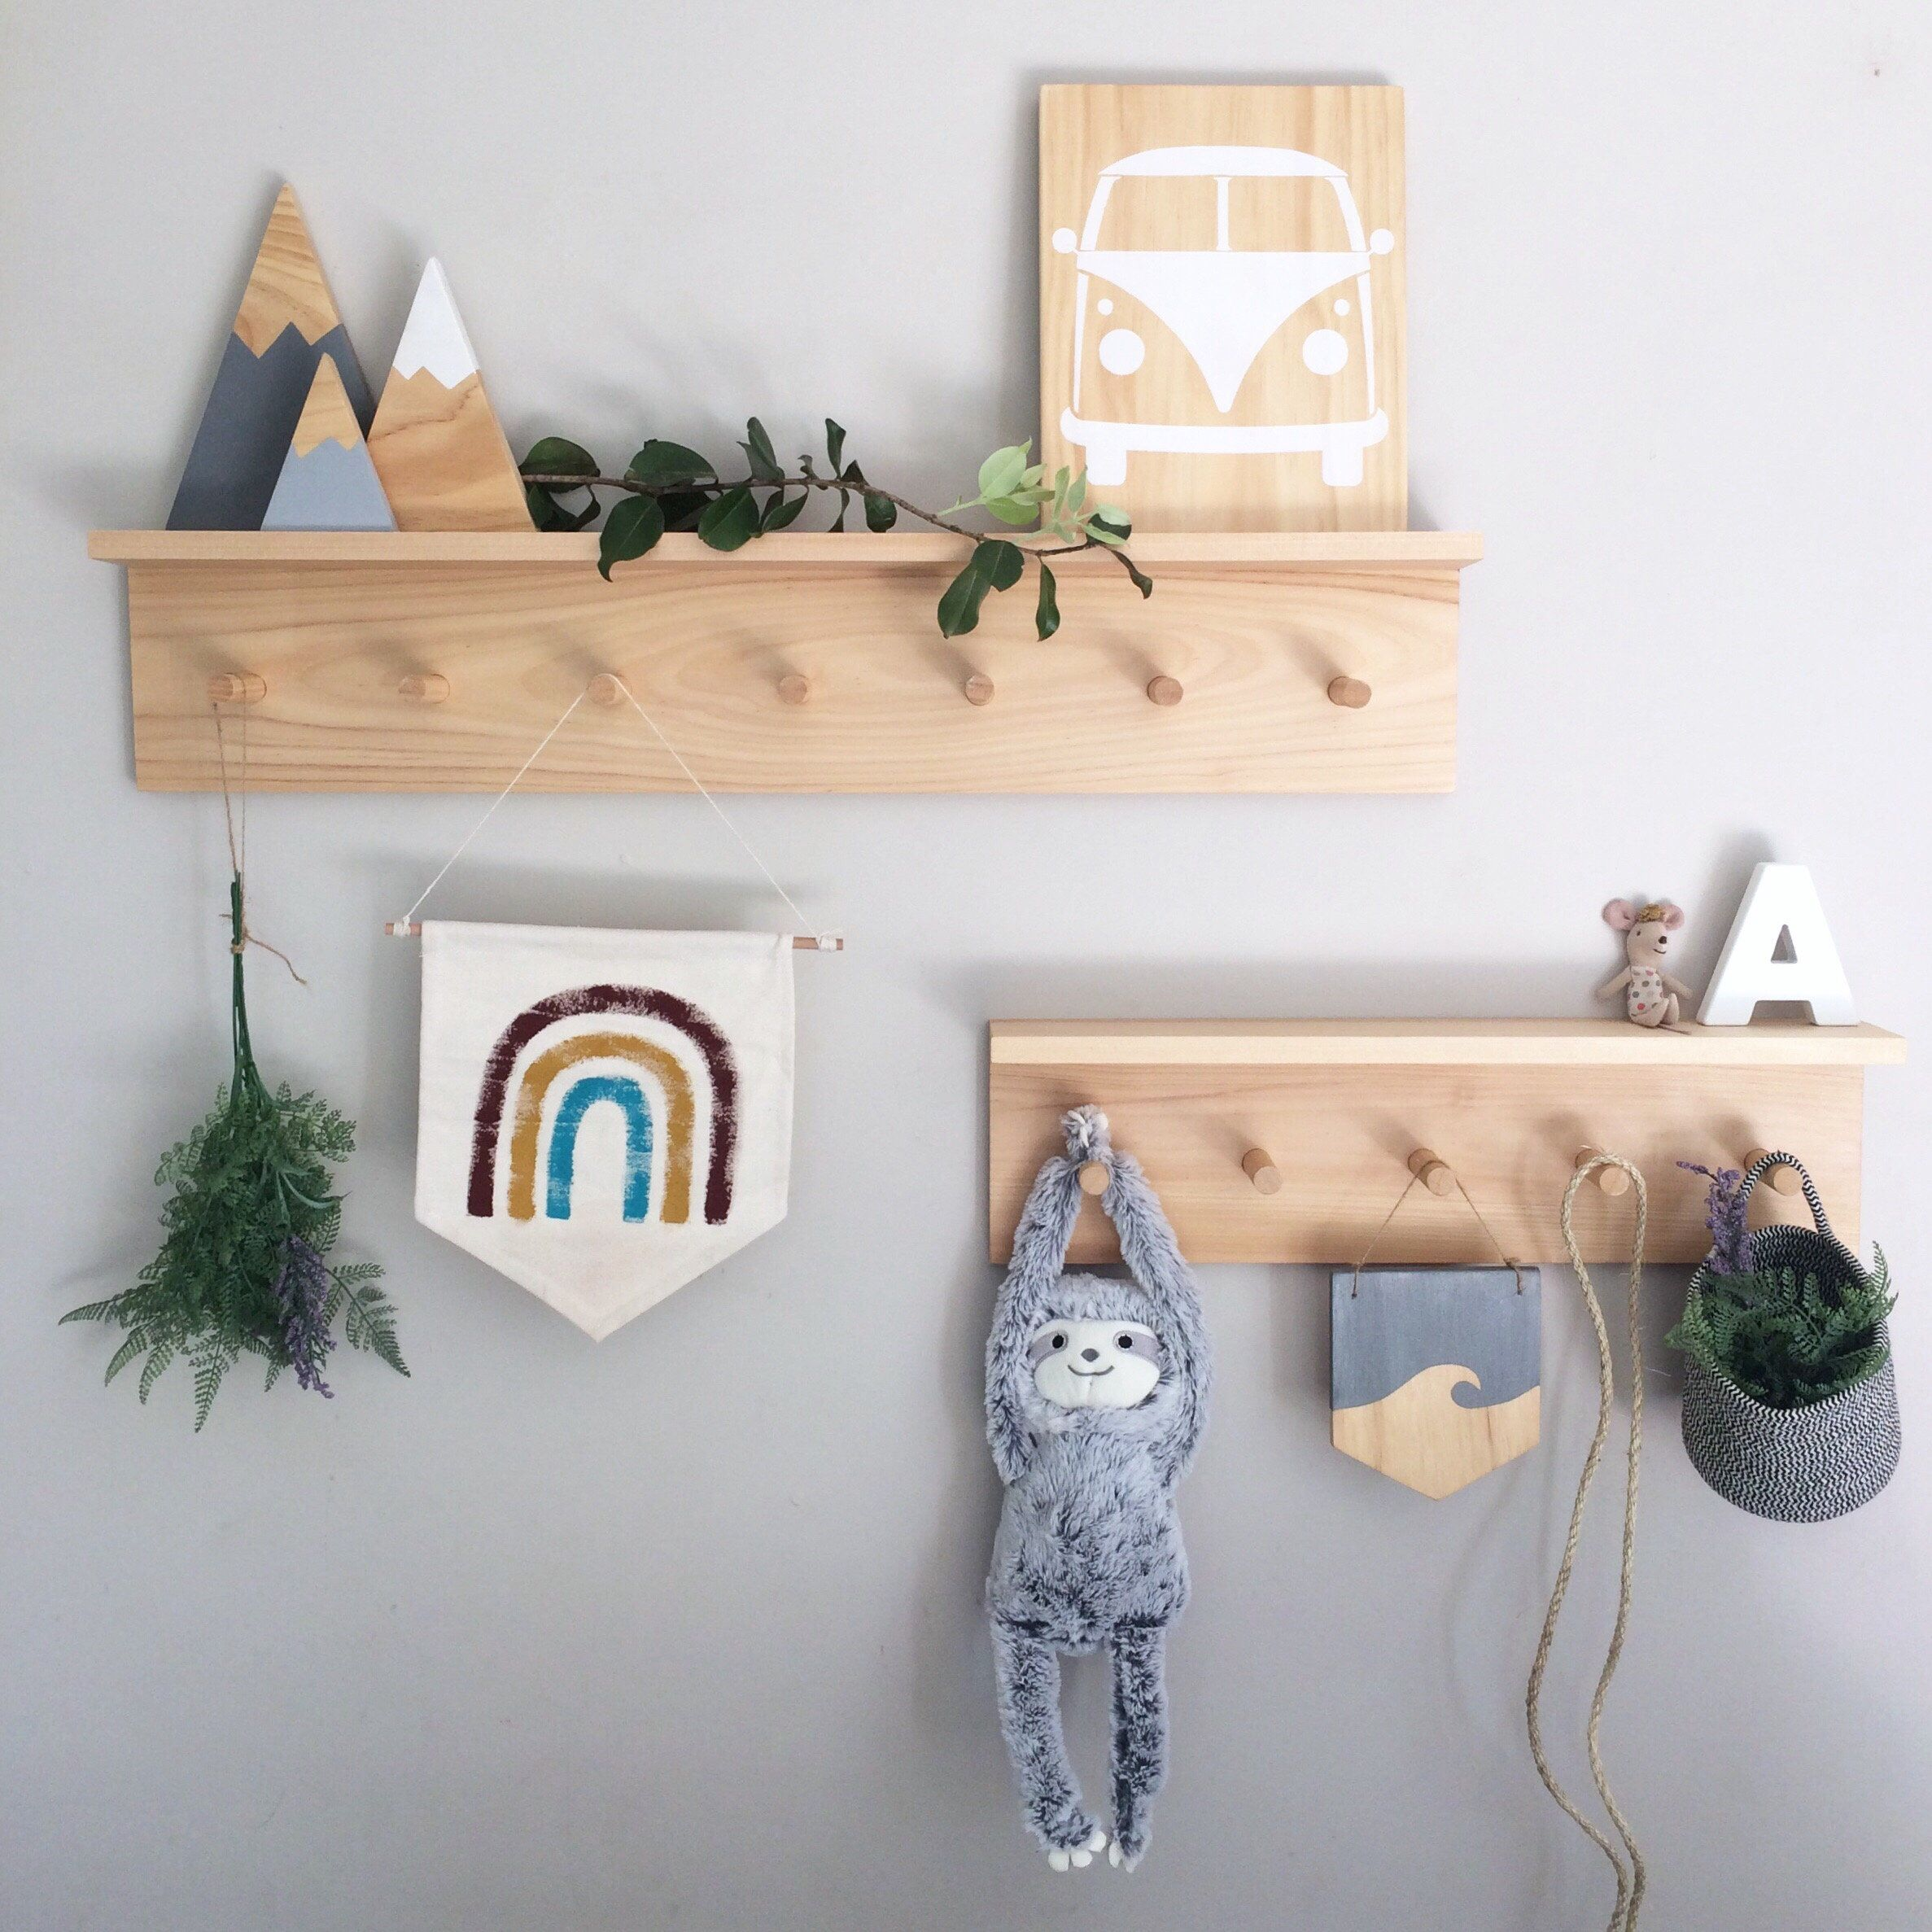 Peg Shelf Peg Rail With Shelf Timber Peg Hooks Wood Coat Hooks Wooden Towel Hooks Kids Hooks Nursery Hooks Scandinavian Style Nursery Shelves Peg Hooks Timber Shelves